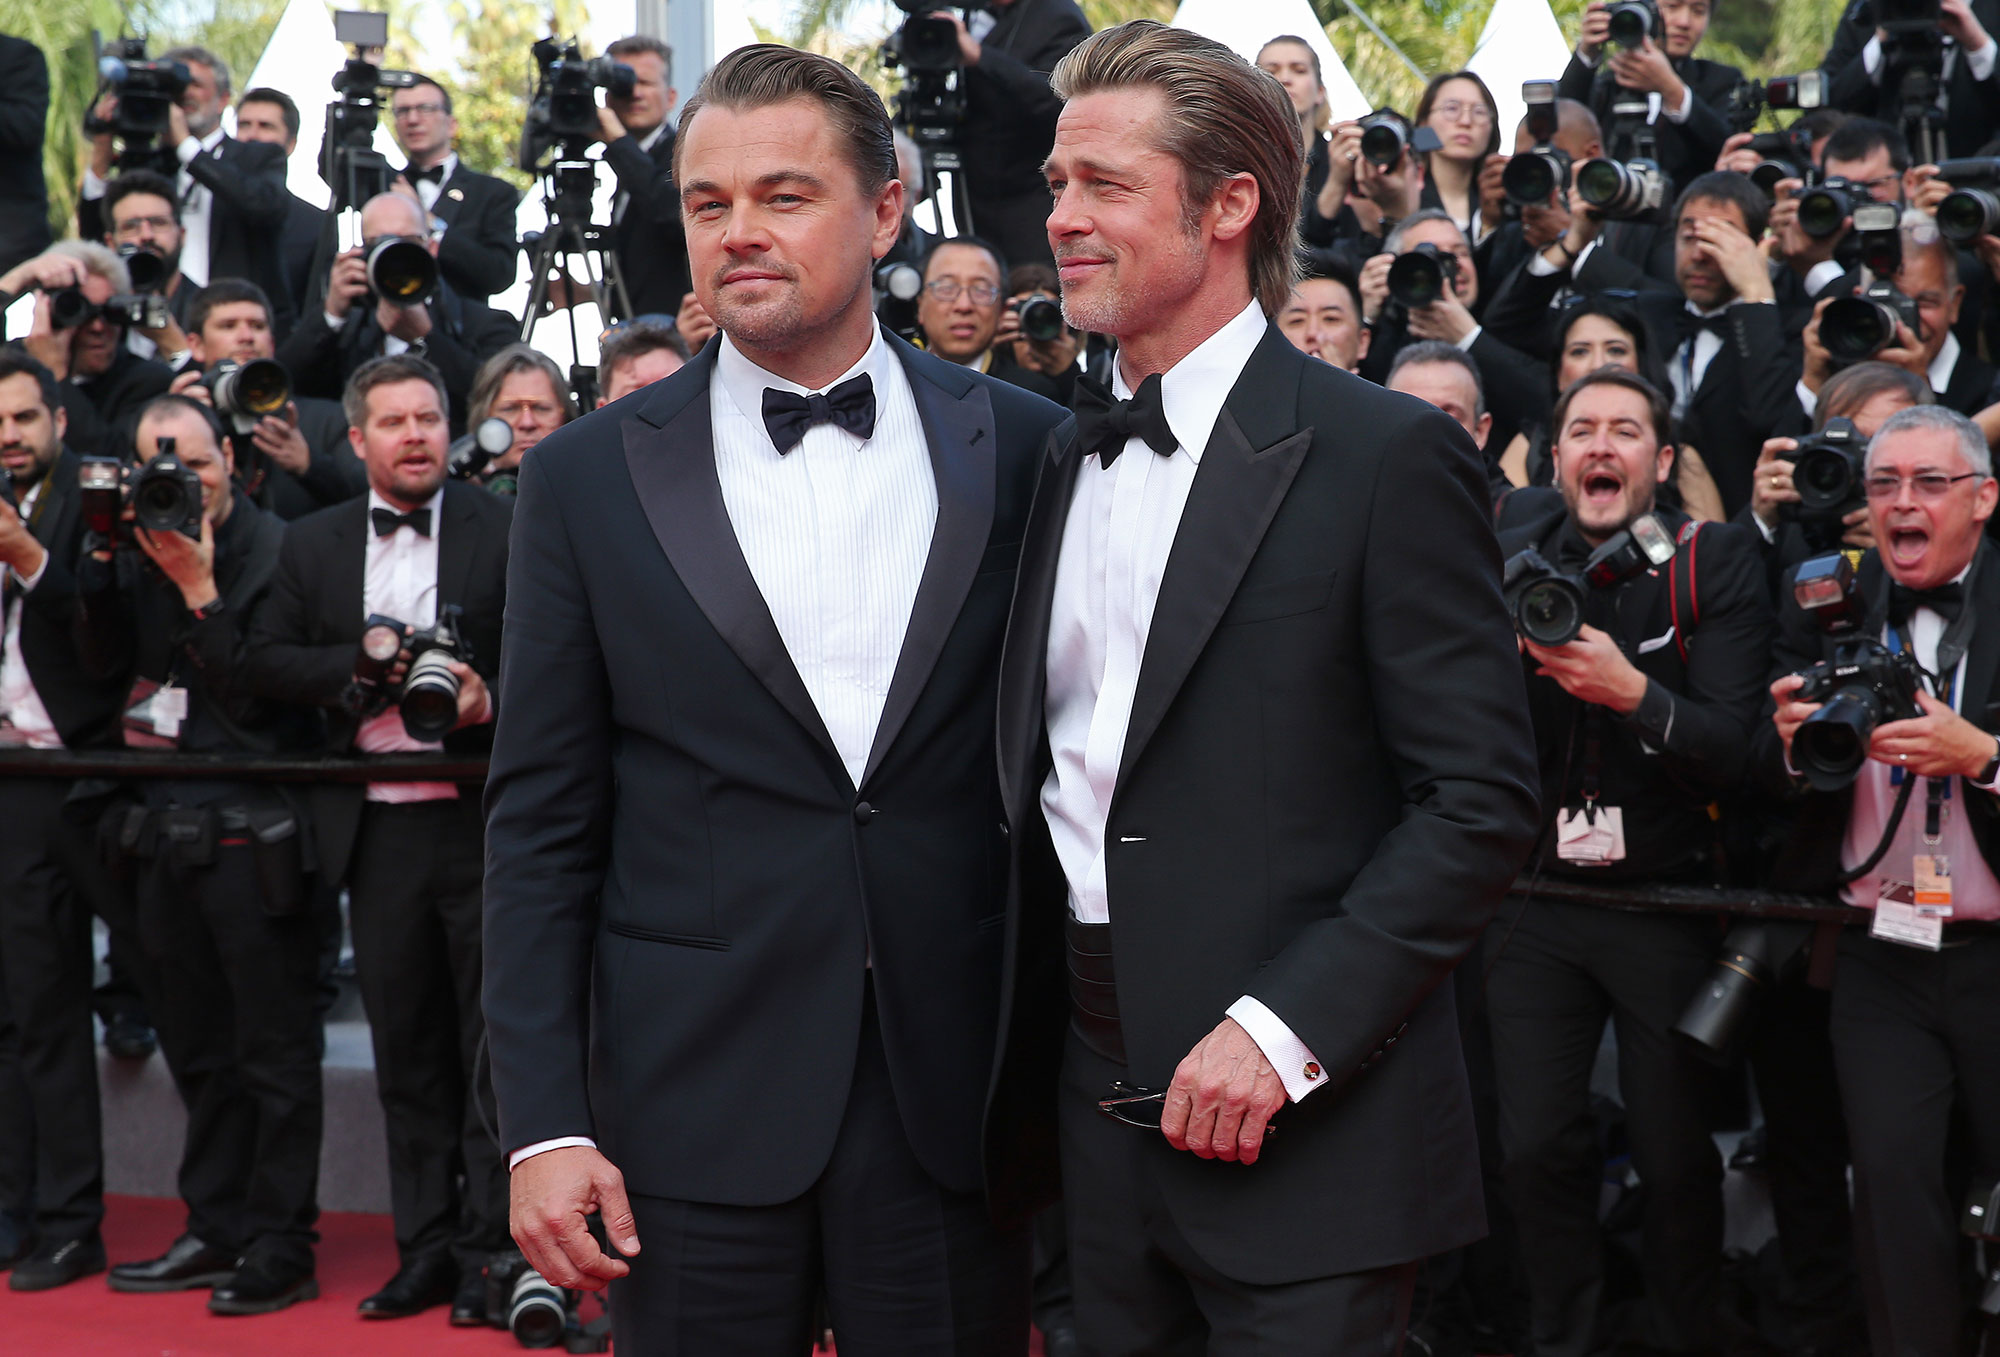 """Leonardo DiCaprio and Brad Pitt Cannes Film Festival 2019 Most Stylish Guys Red Carpet - Leonardo DiCaprio and Brad Pitt attends the screening of """"Once Upon A Time In Hollywood"""" during the 72nd annual Cannes Film Festival on May 21, 2019 in Cannes, France."""